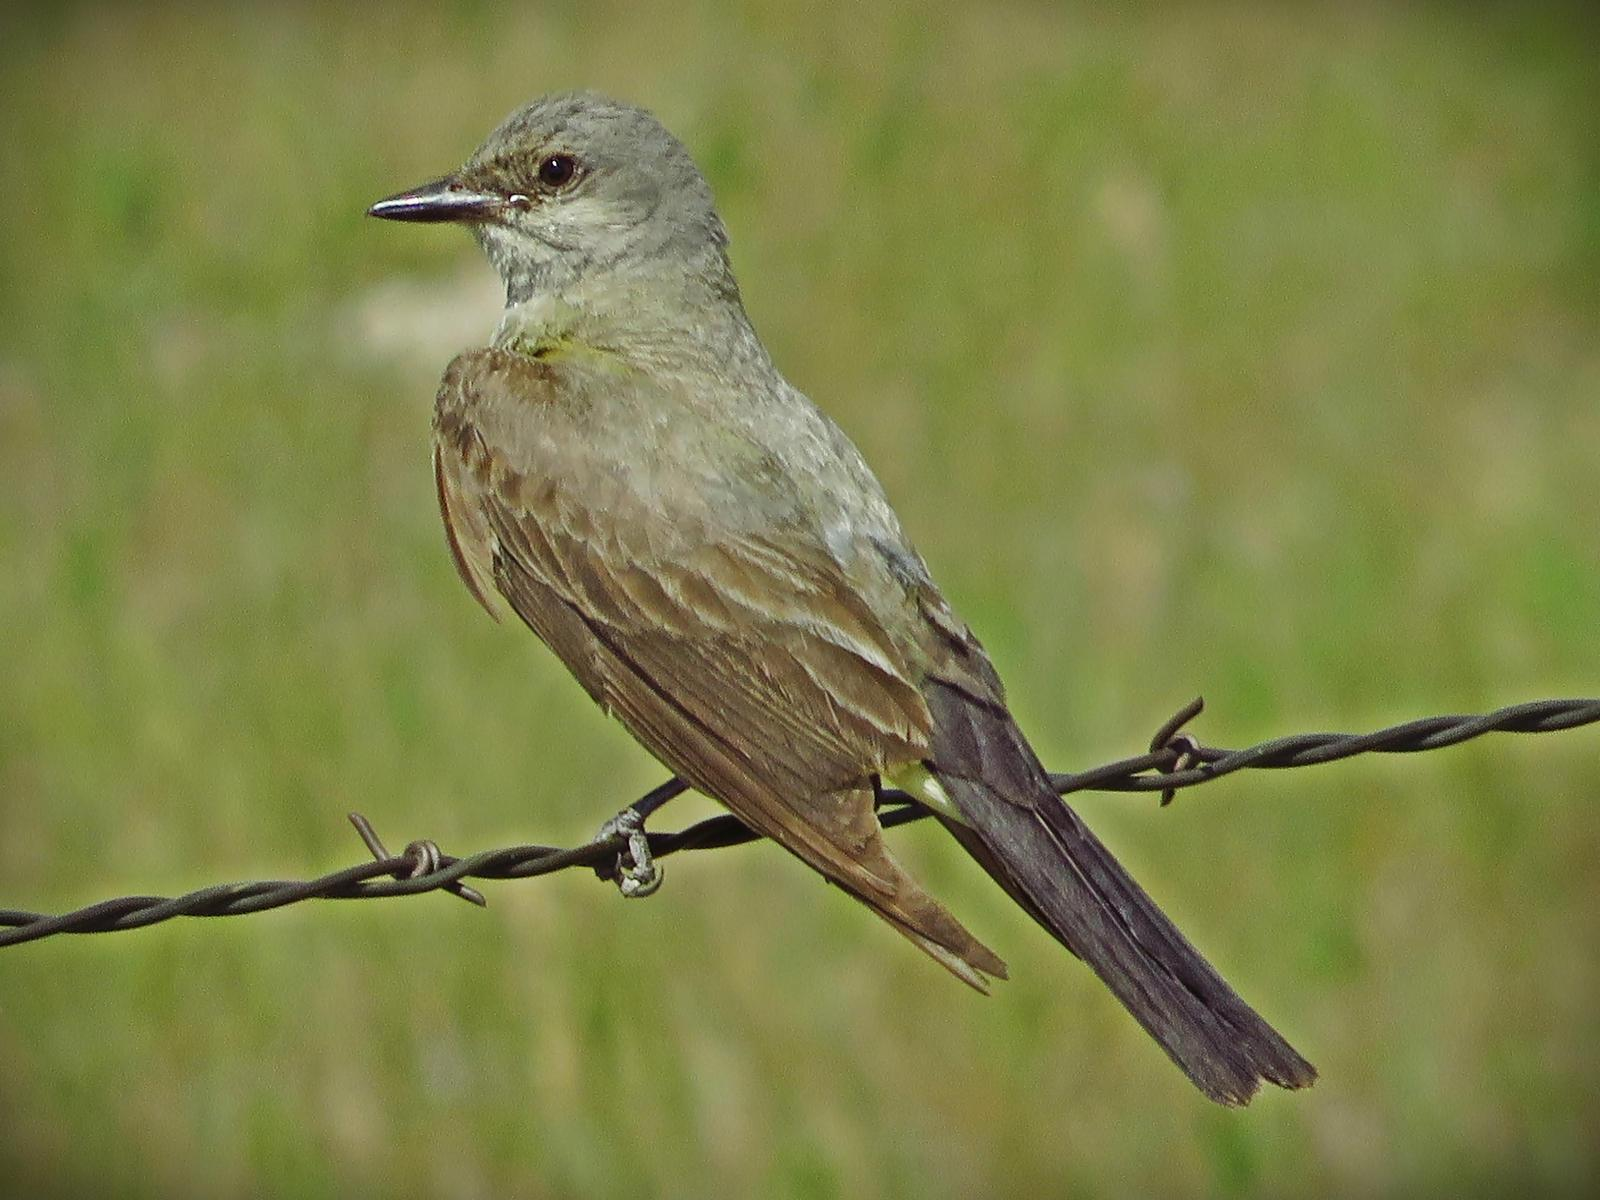 Western Kingbird Photo by Bob Neugebauer